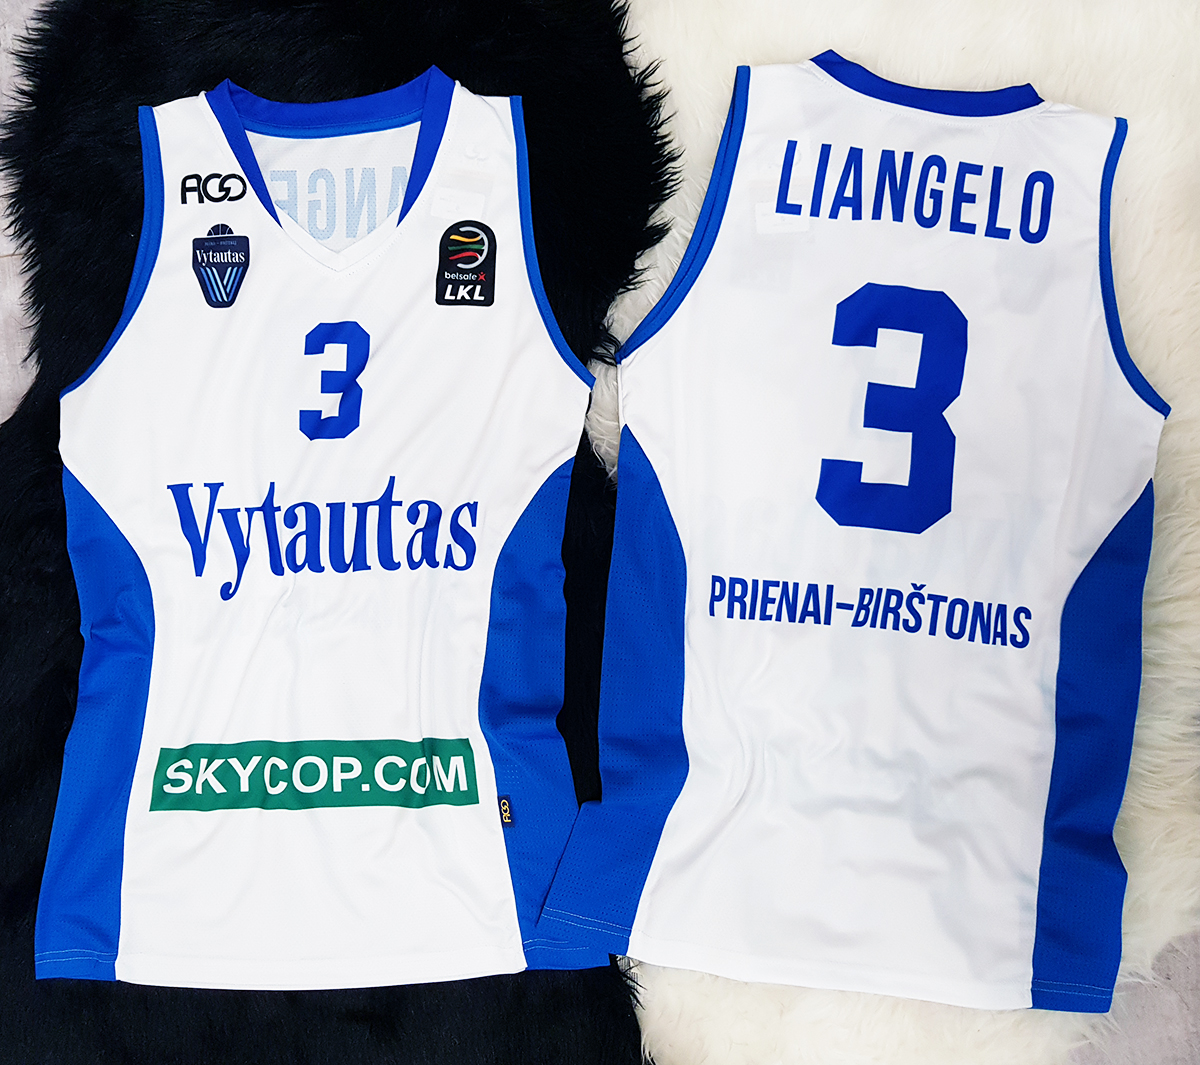 97f7dc2f941f LiAngelo Ball BC Vytautas Official Jersey - Clothes Shirts ...